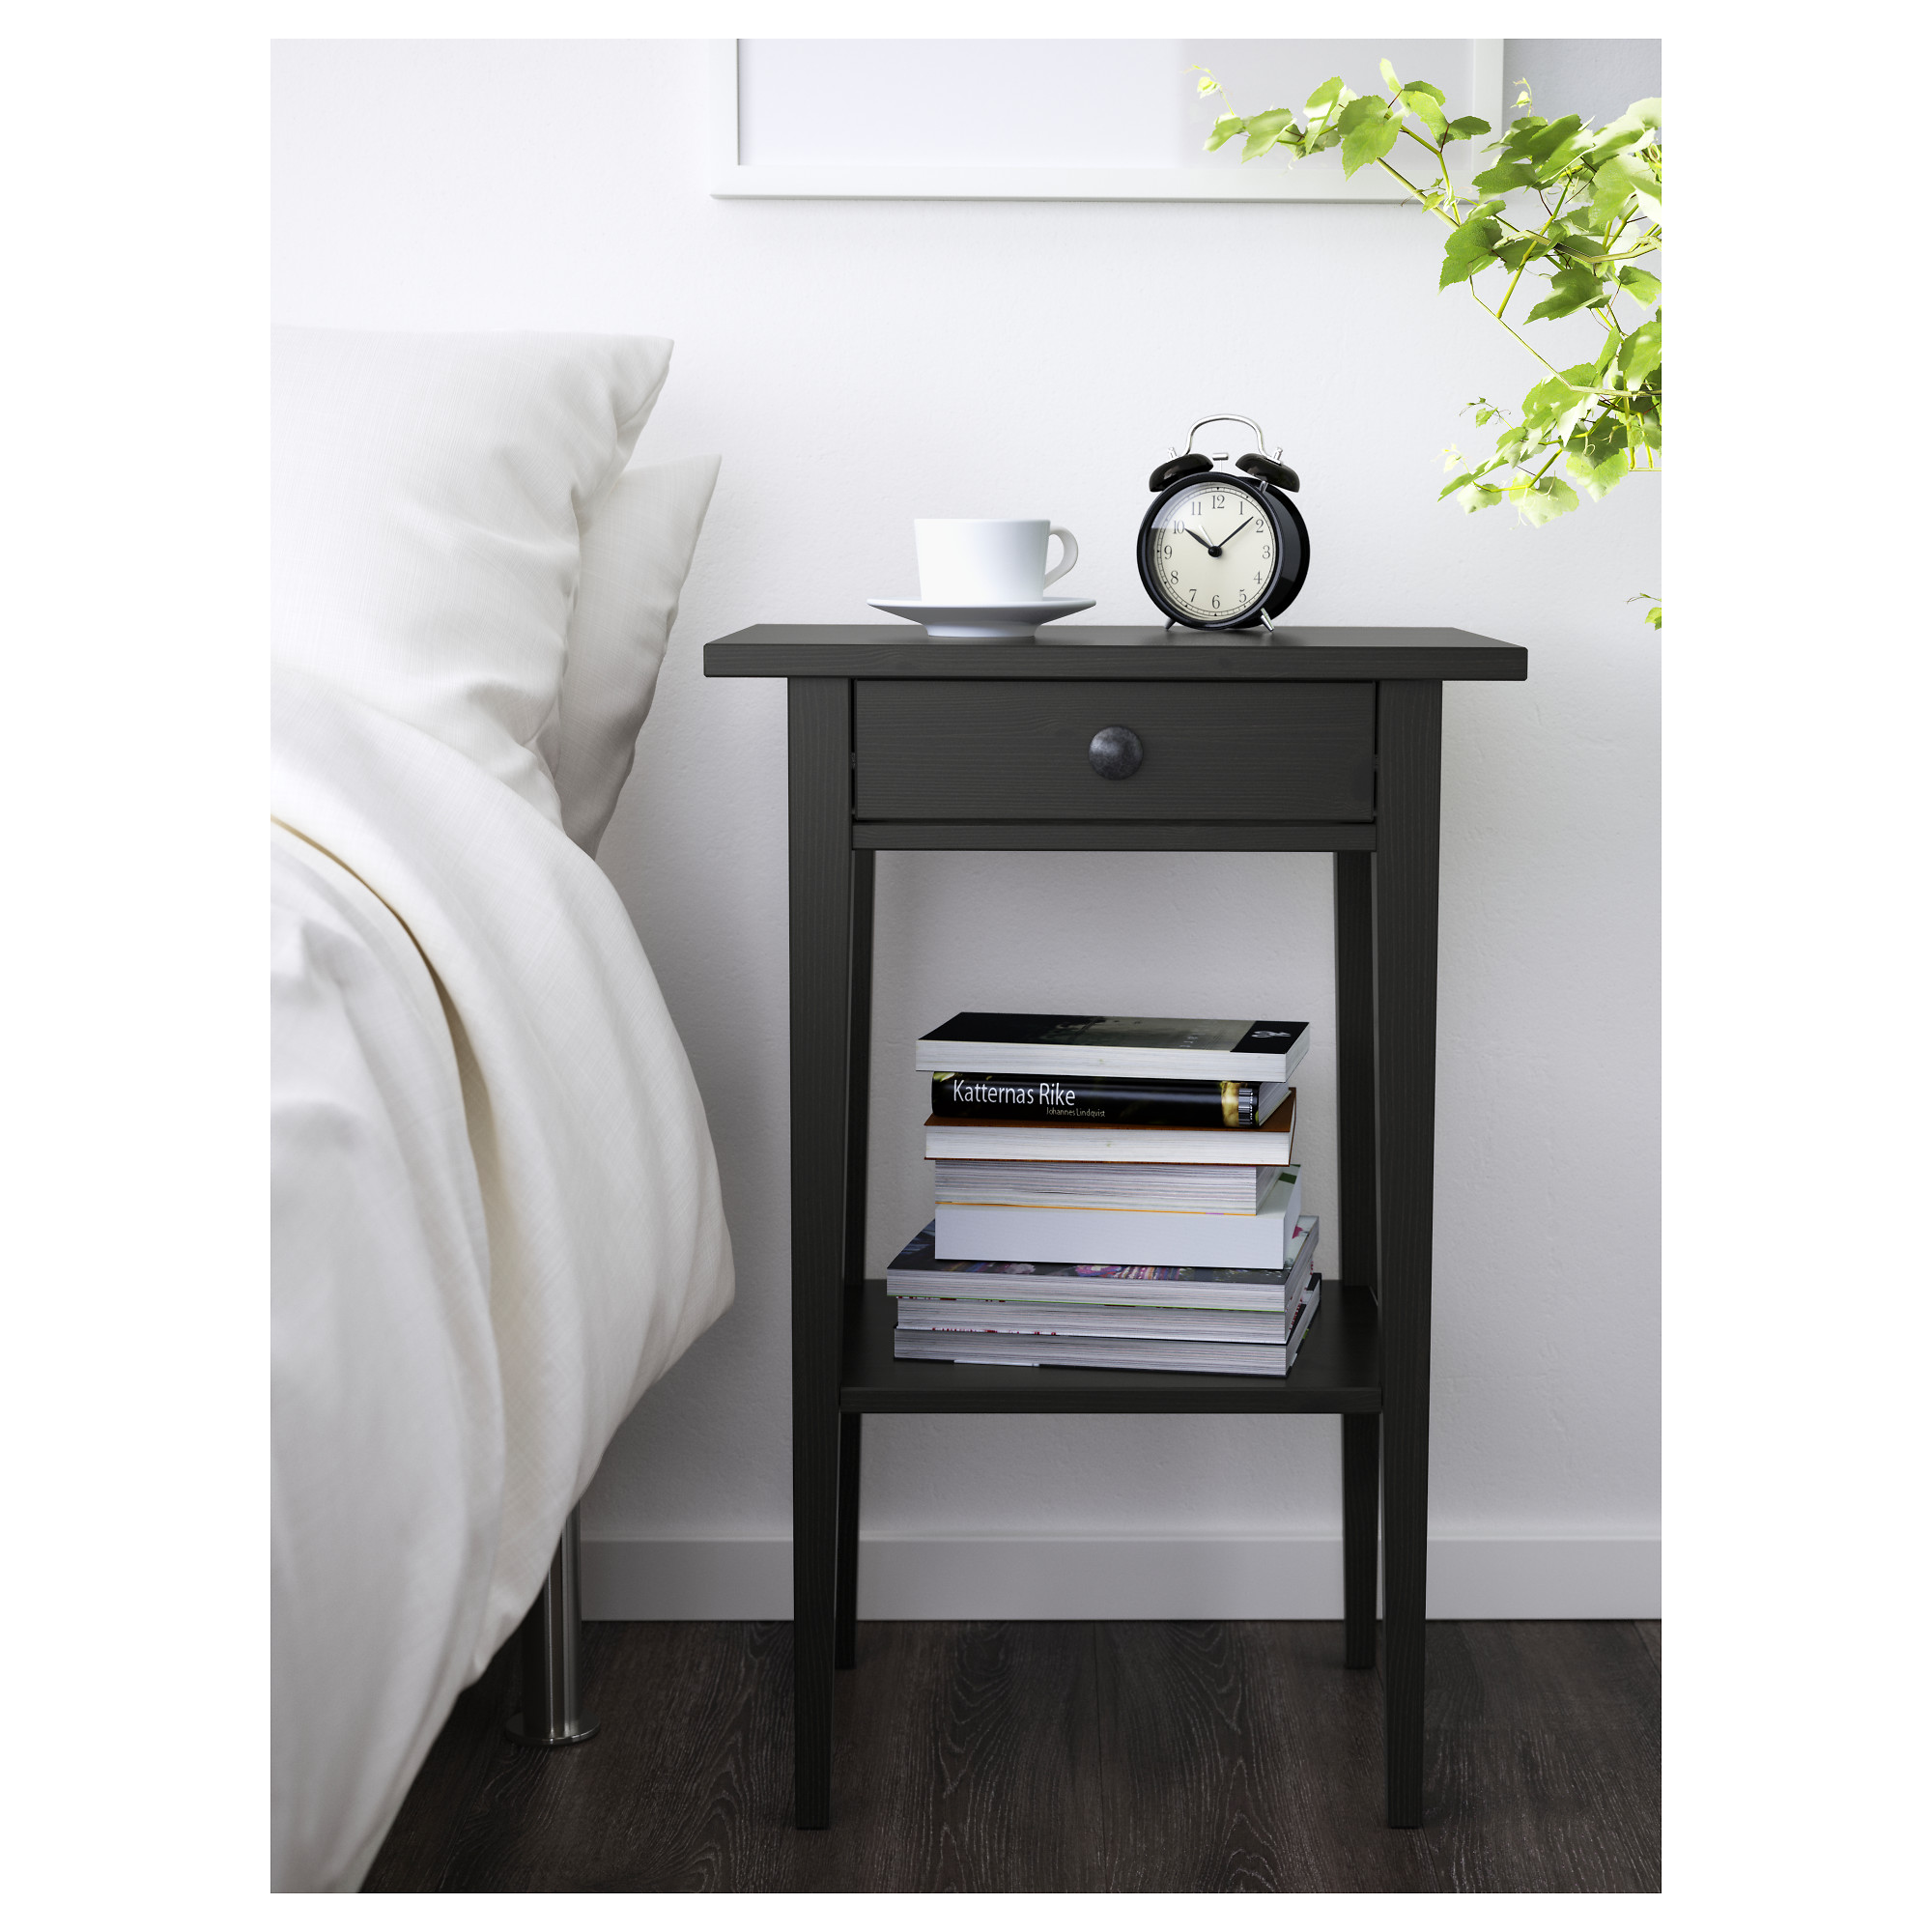 furniture thin accent table floating nightstand ikea night locker dresser hemnes stands locking tables tarva clearance wall mounted stand nite rast mirrored bedside metal basket